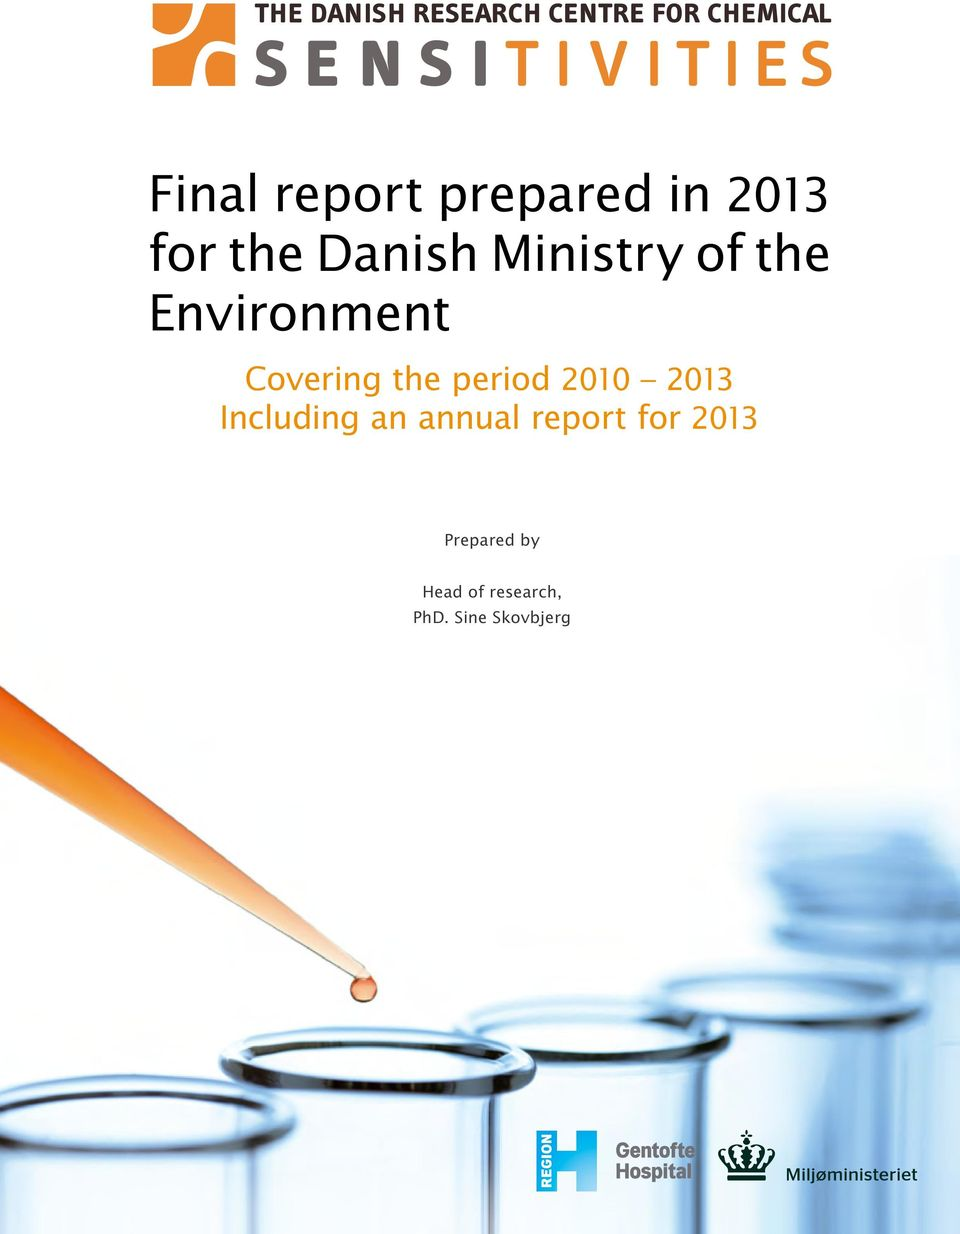 2010 2013 Including an annual report for 2013